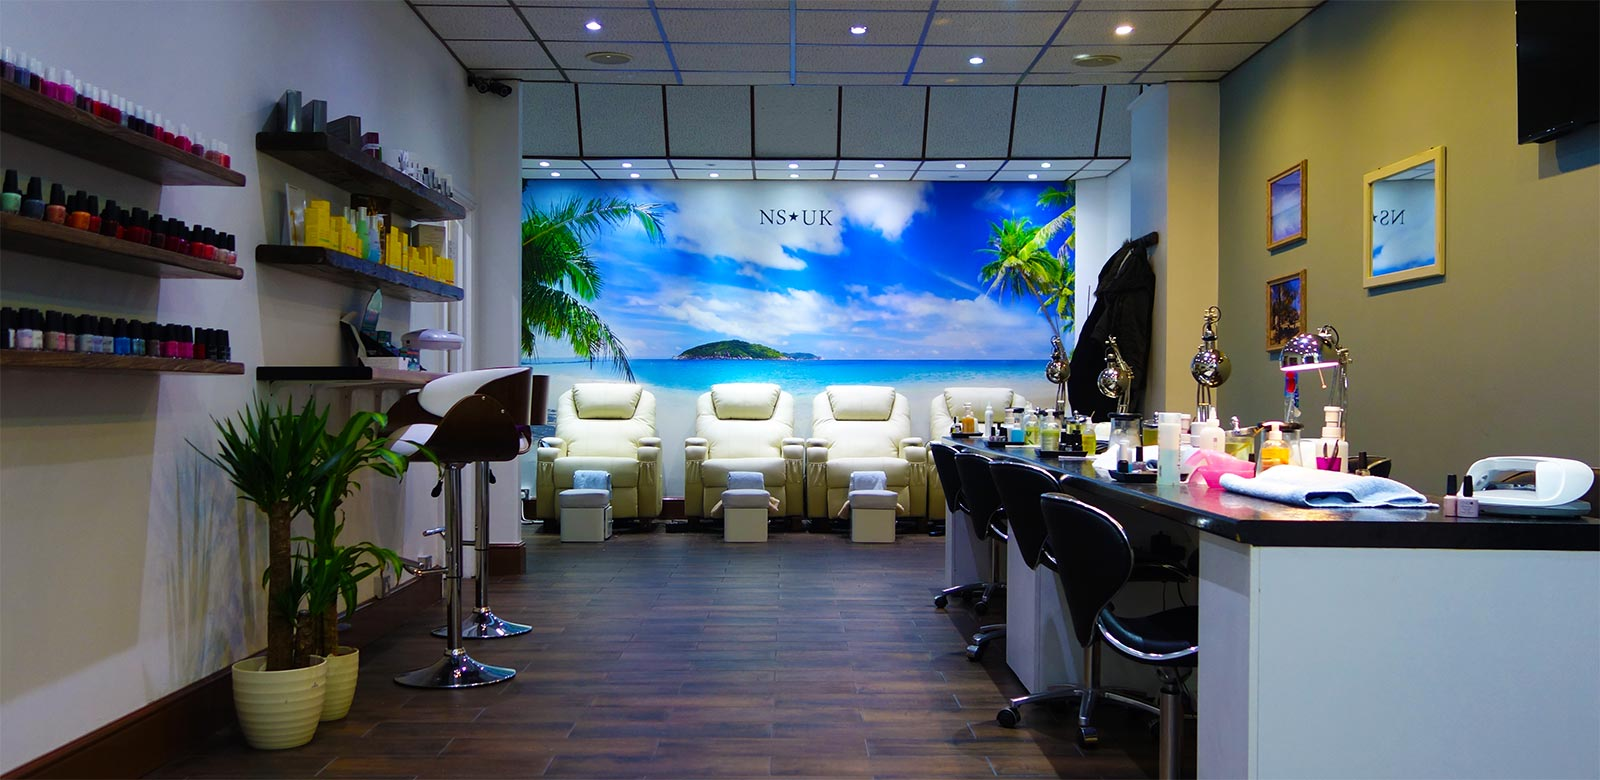 Nailsuite - Nails and Beauty Salon in West Hampstead